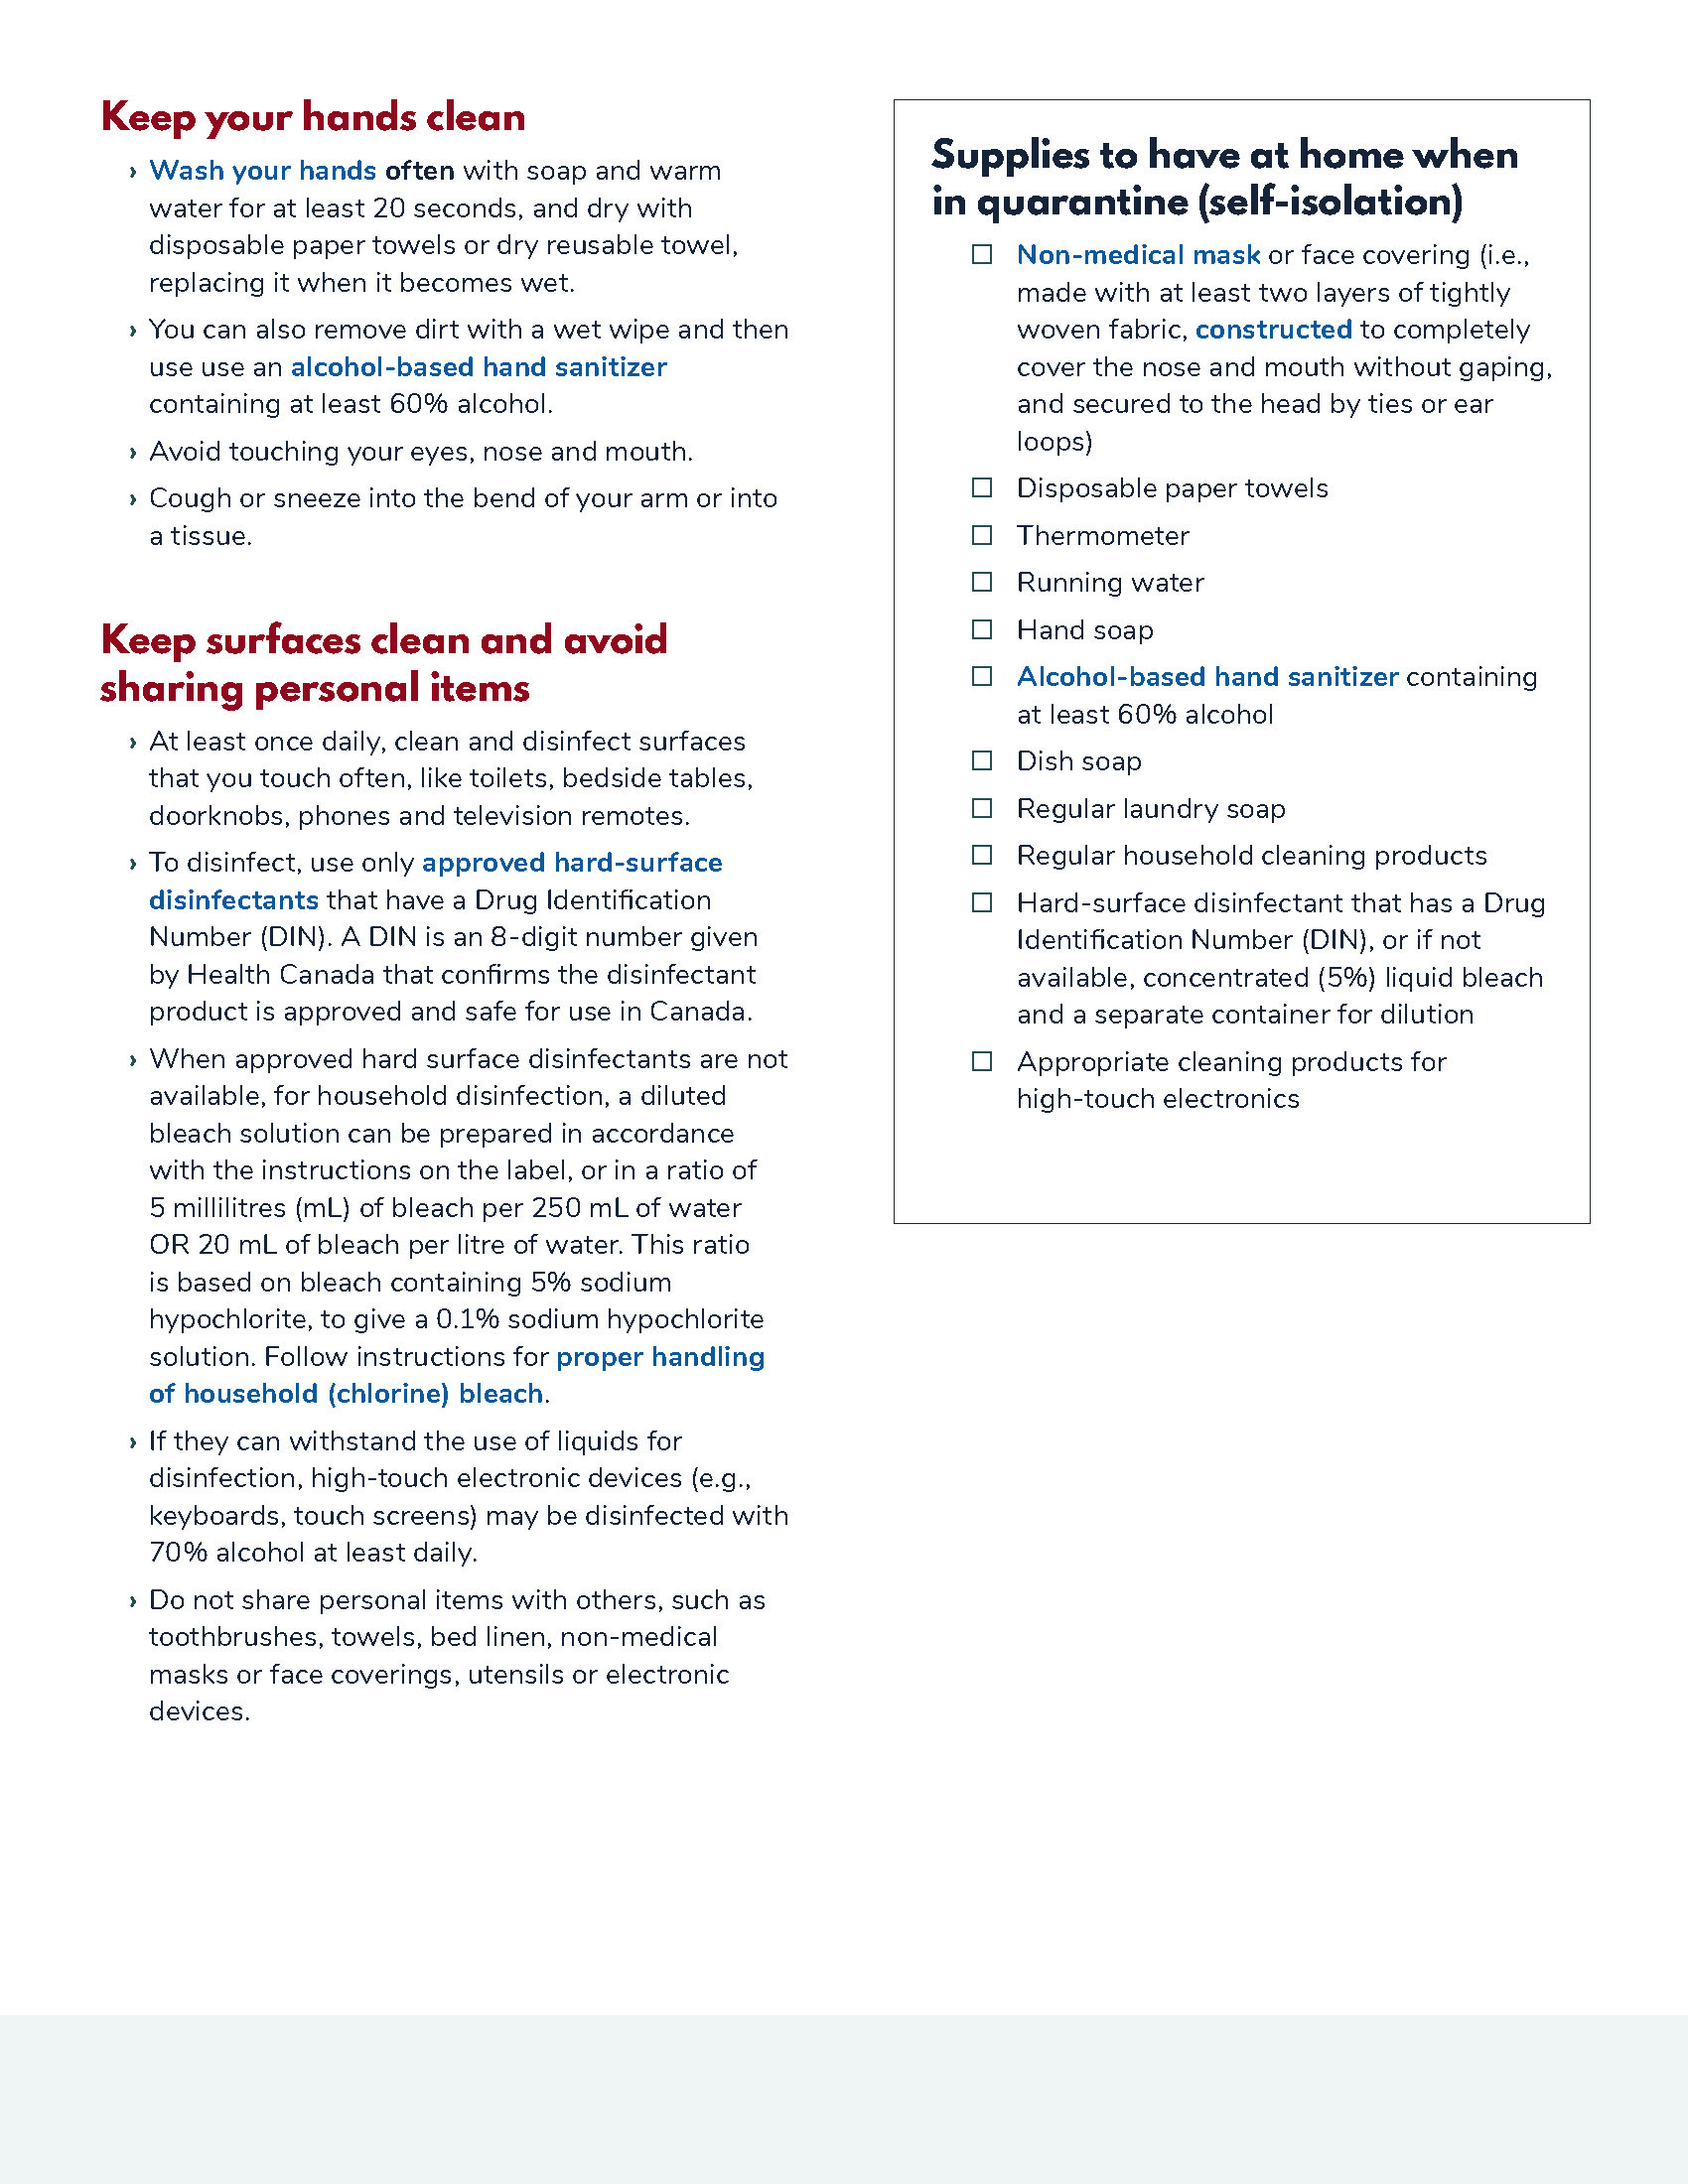 How to Isolate if Been Exposed to COVID-19 - Page 3